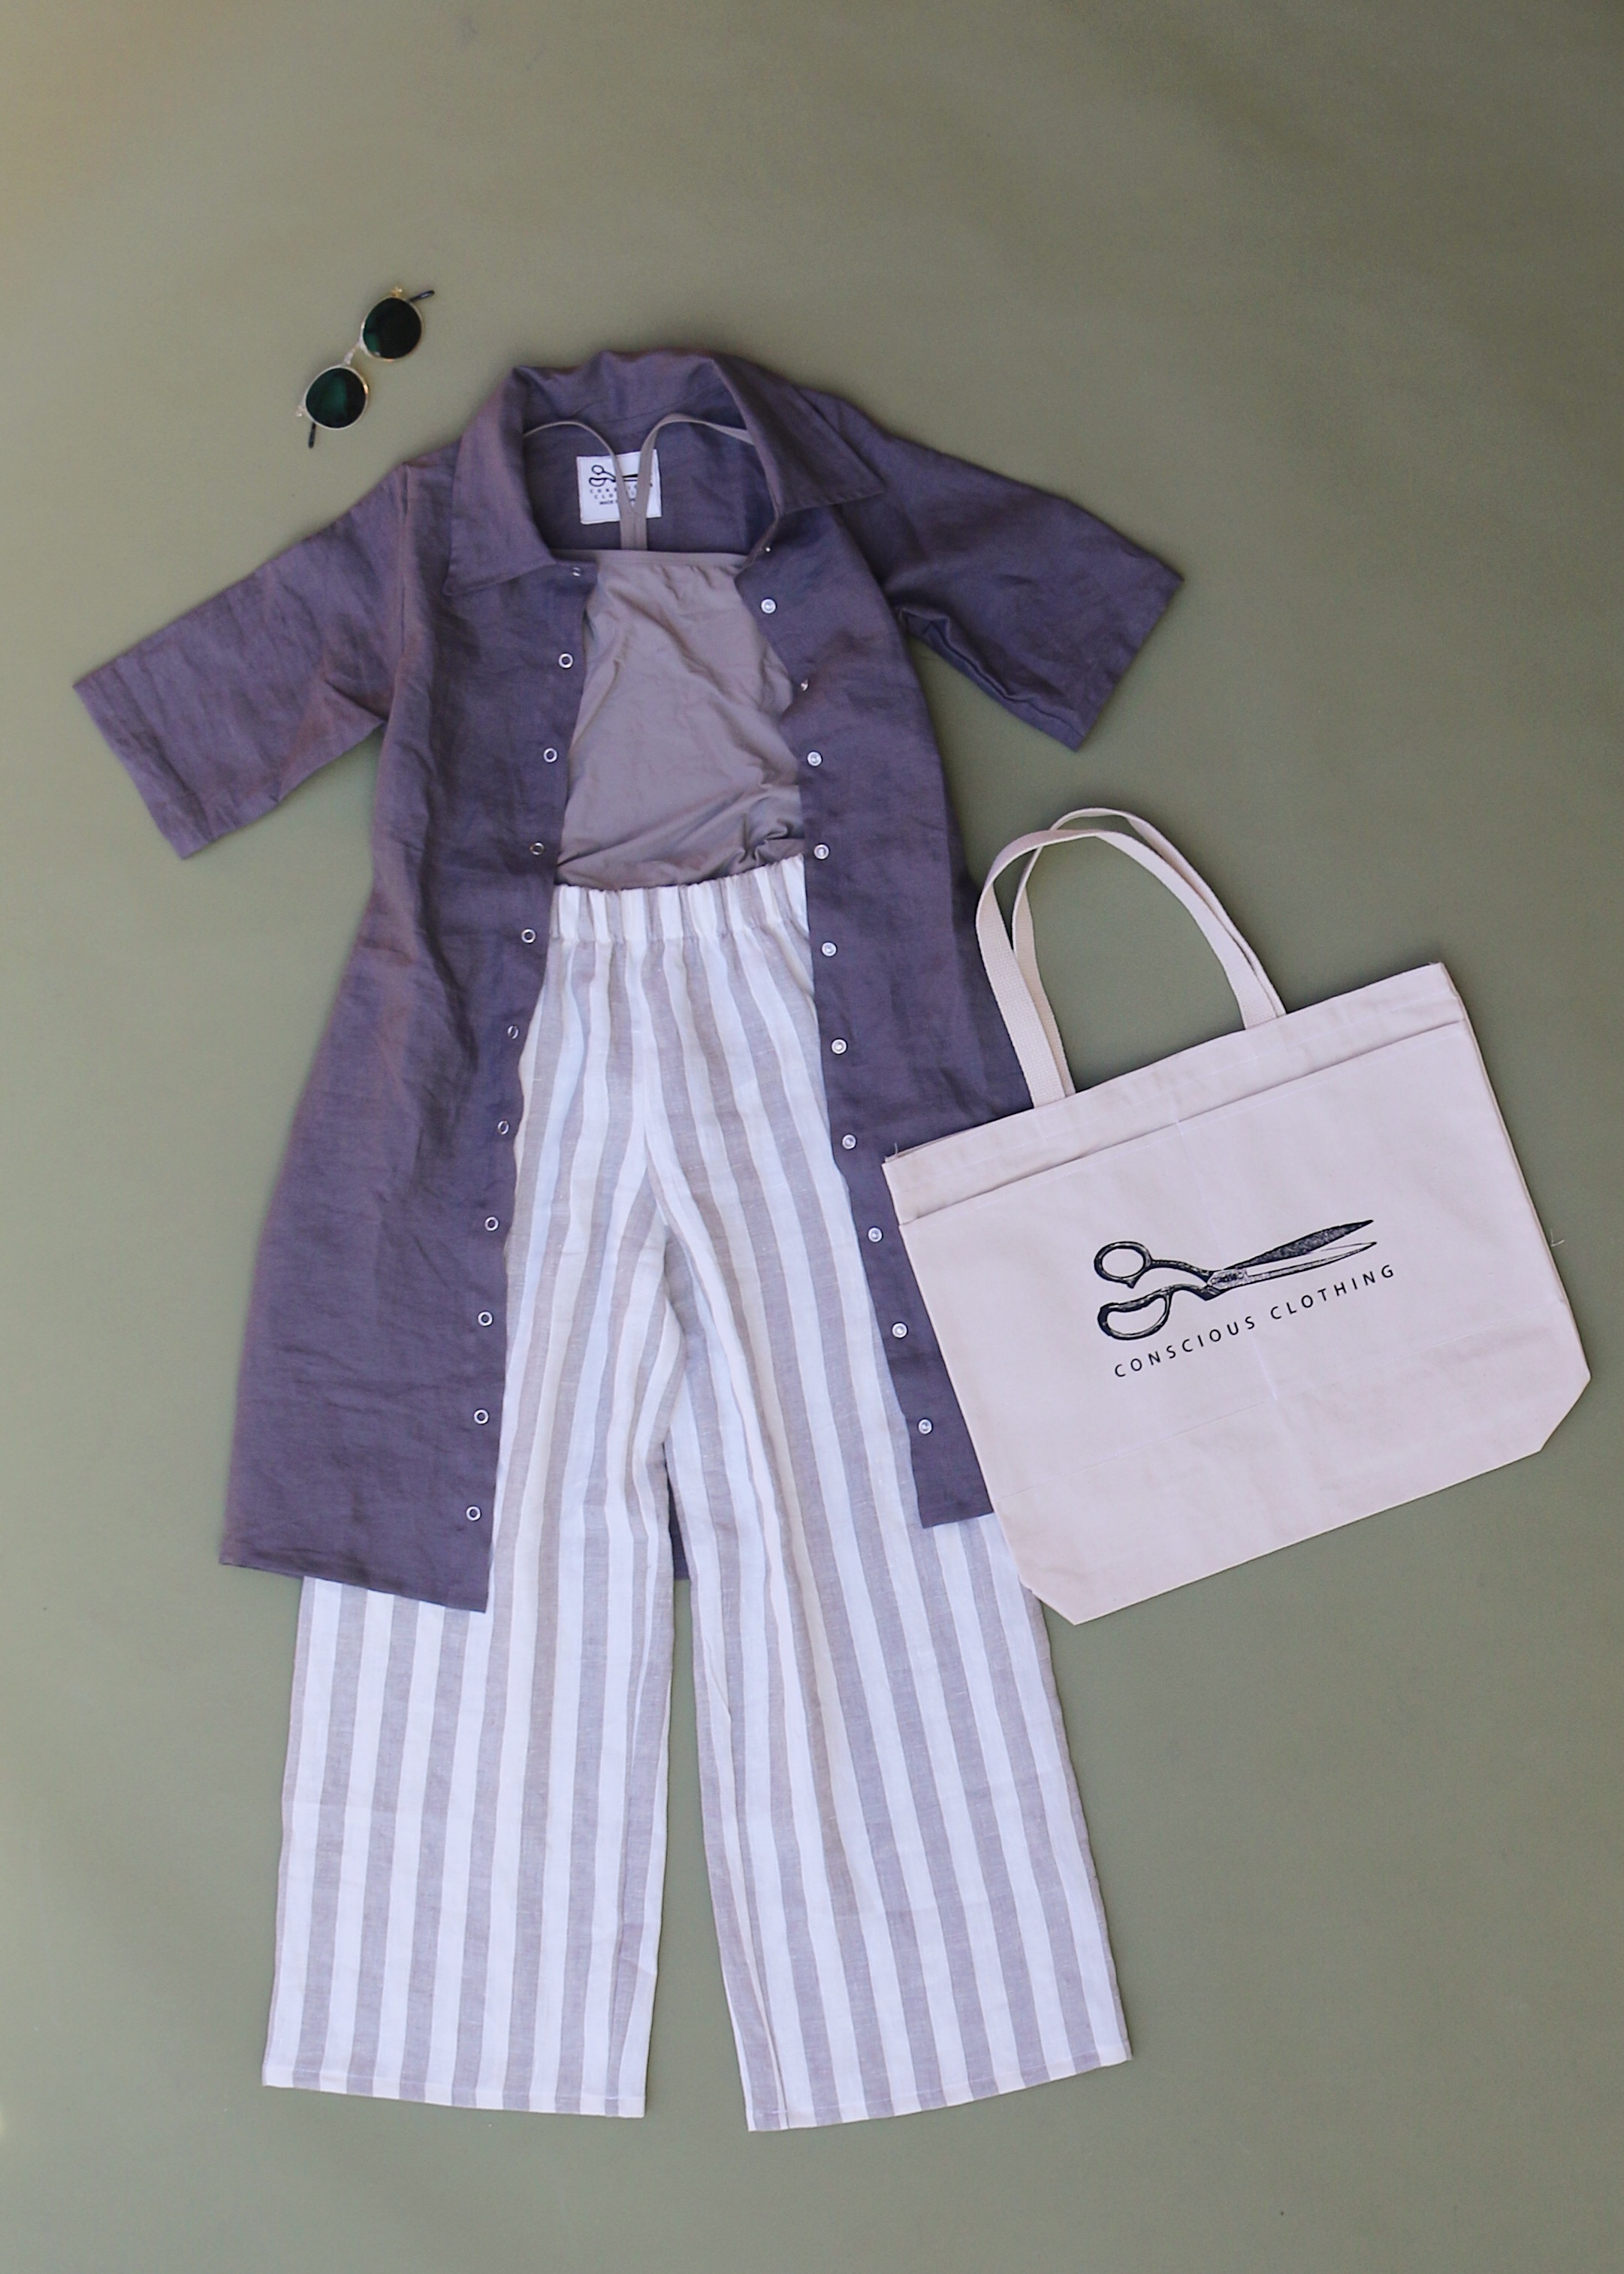 Revolution Dress in Concrete, Petoskey Pants in Stripe, and our canvas tote!